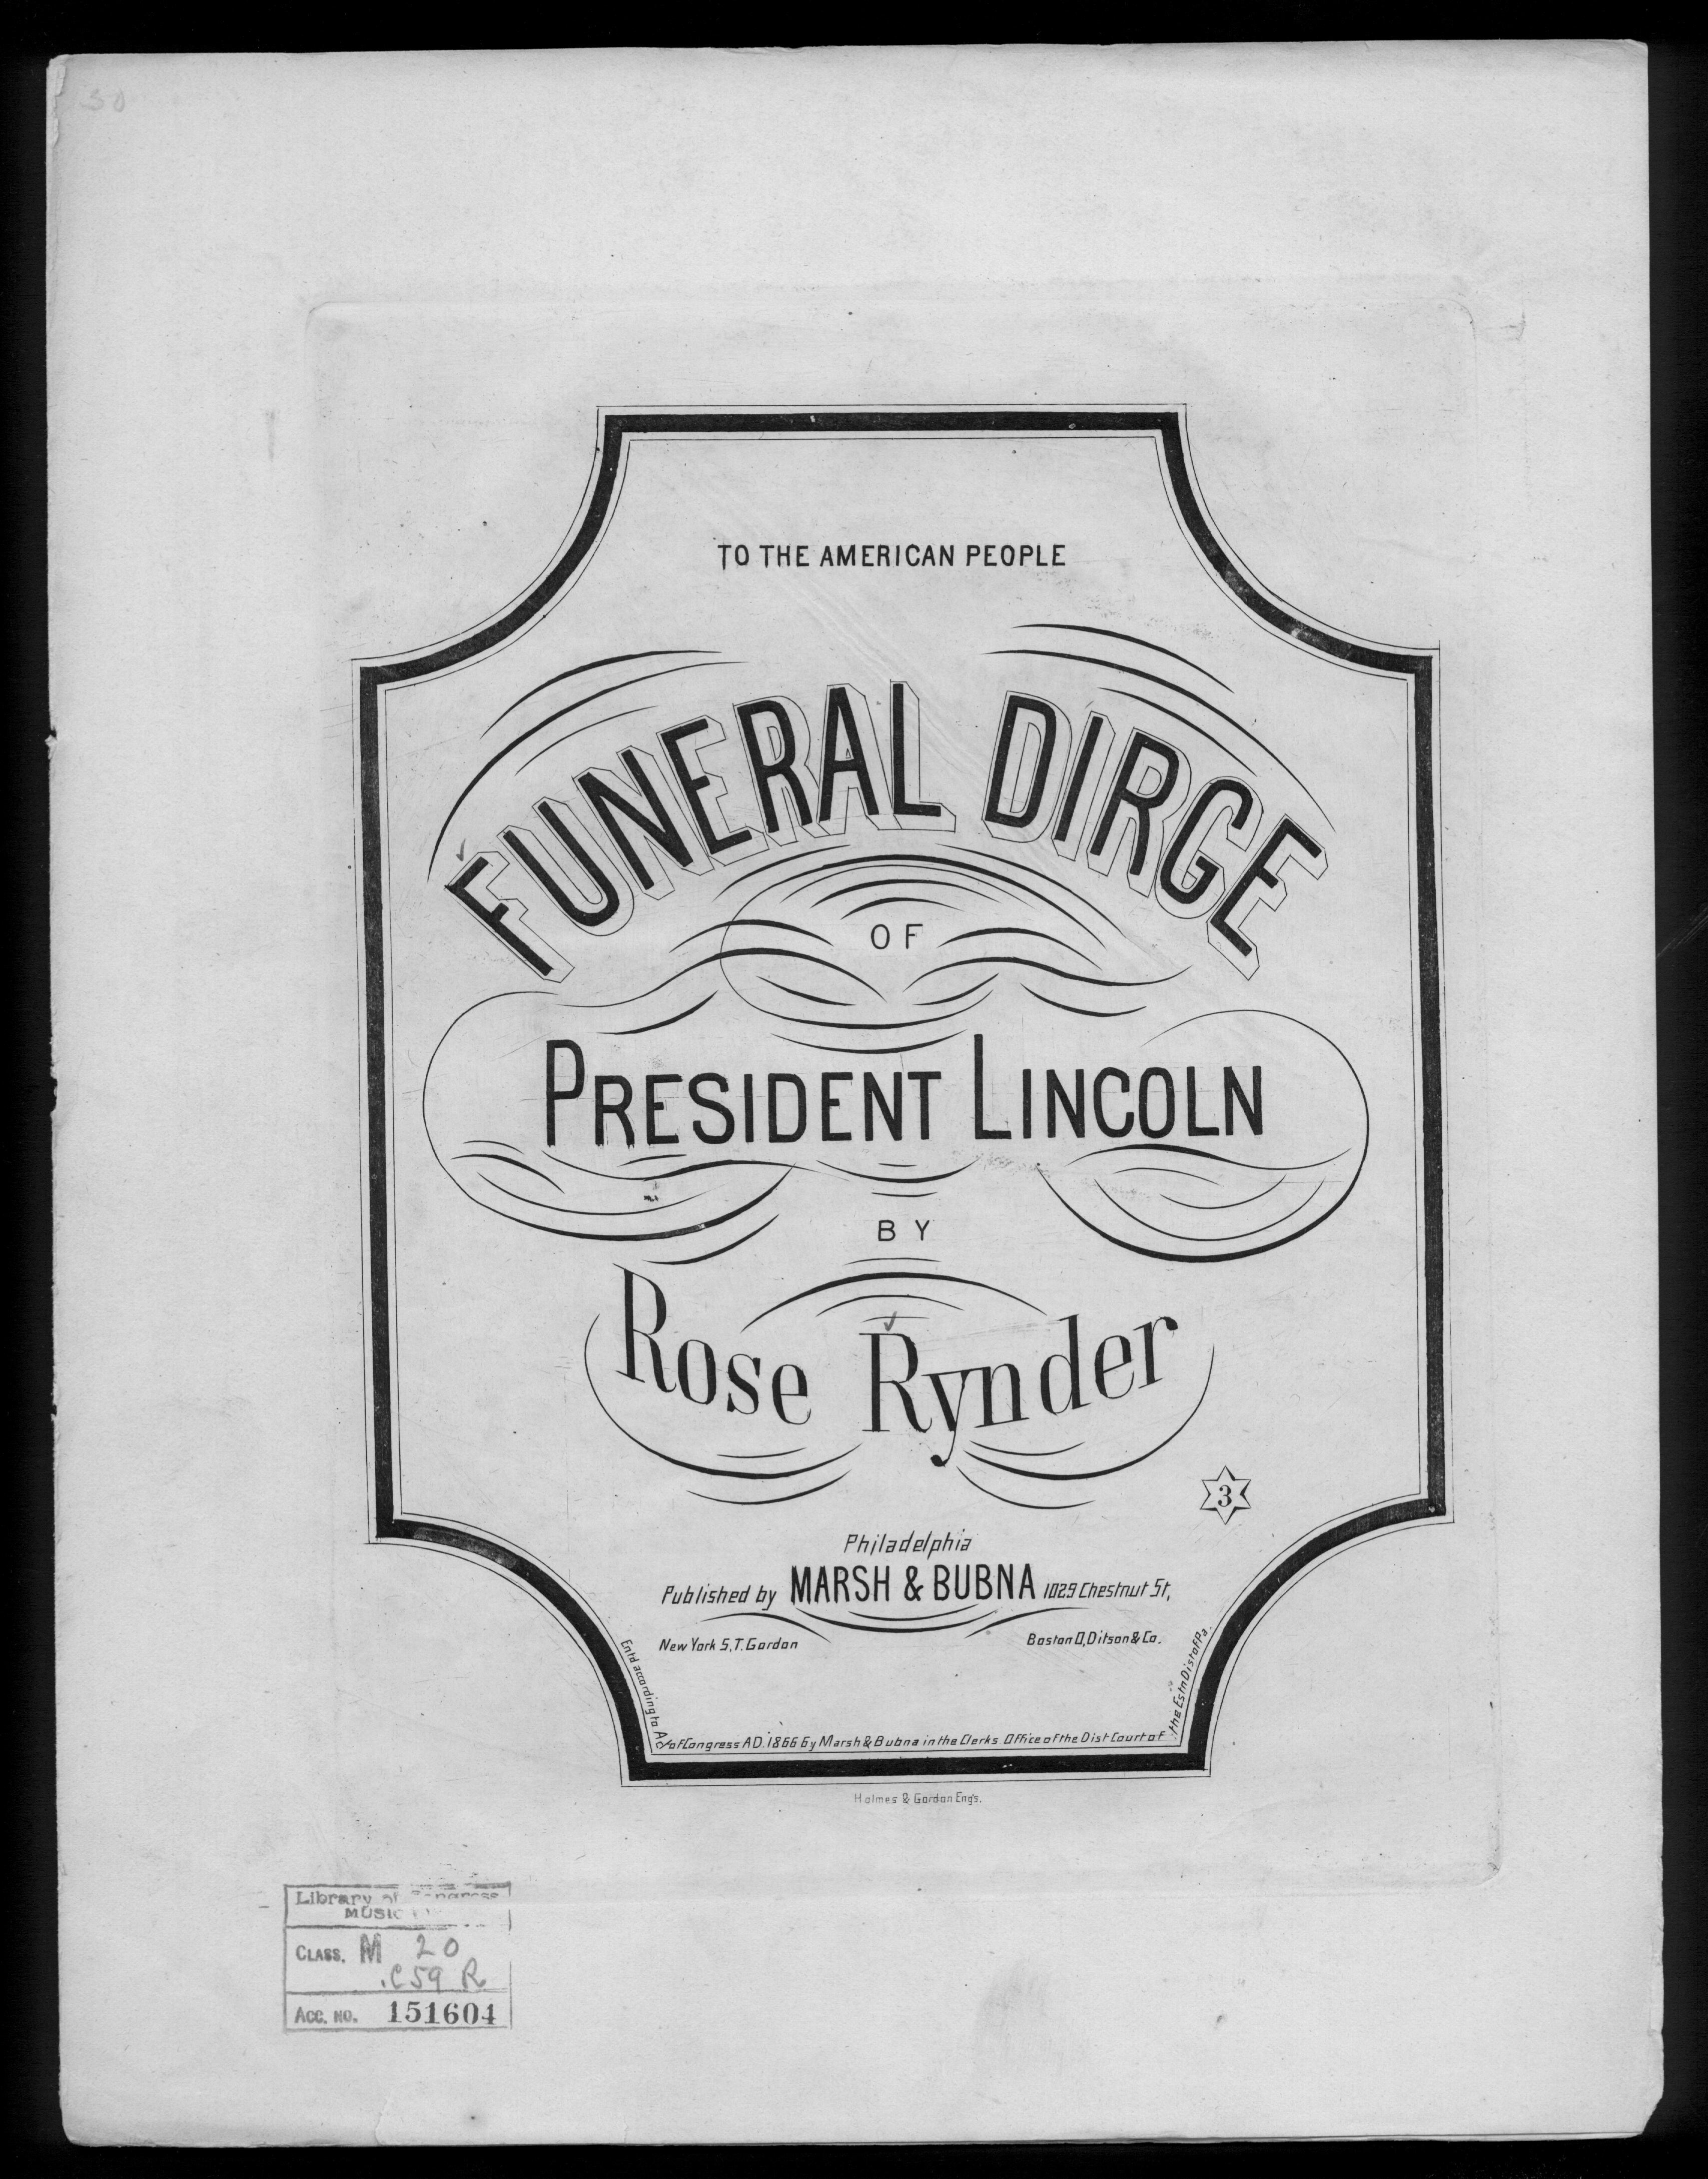 Funeral Dirge of President Lincoln